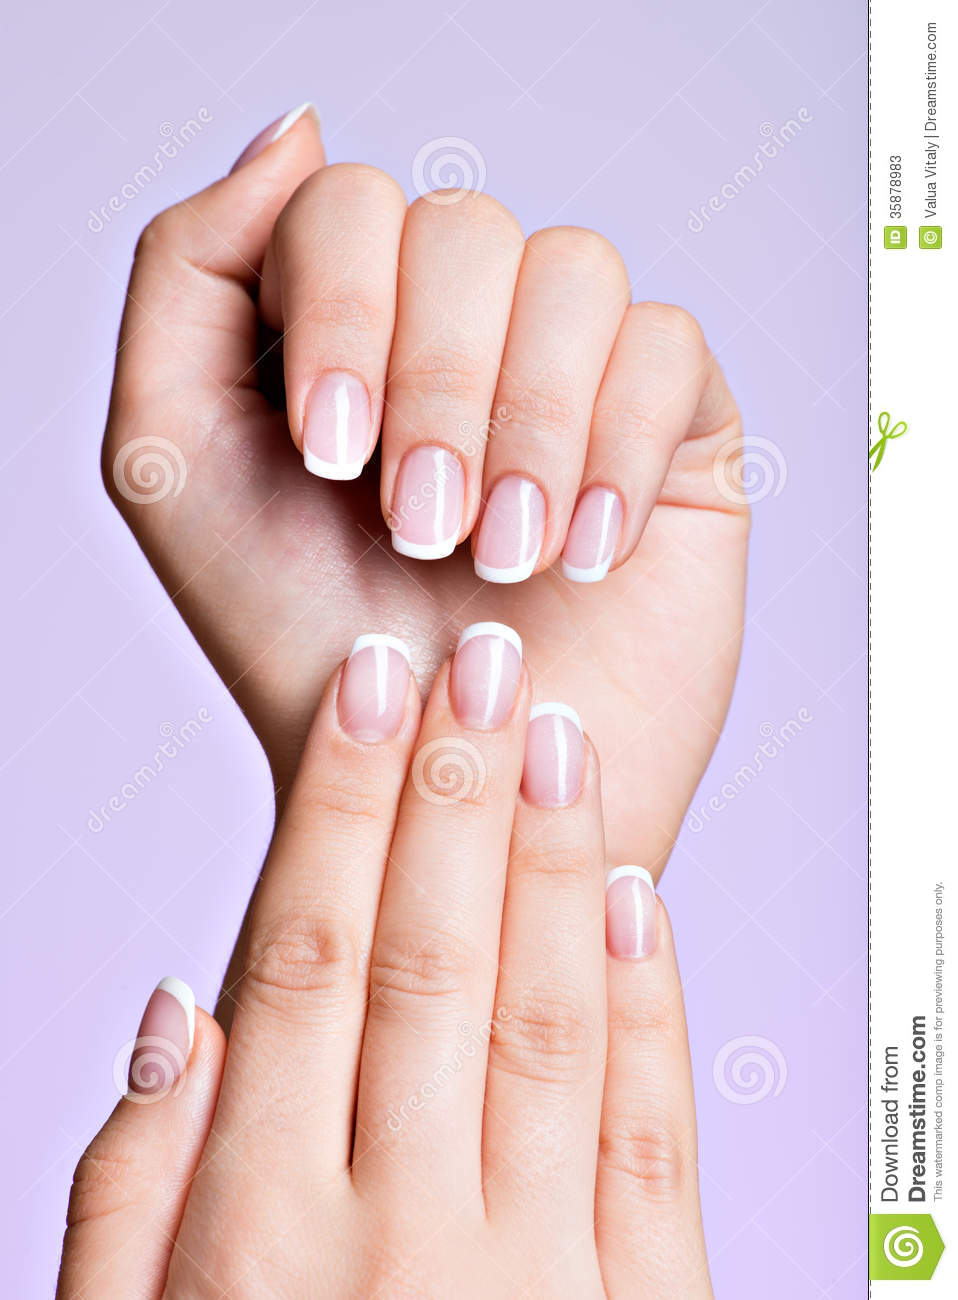 Beautiful Woman's Hands With Beautiful Nails Stock Image